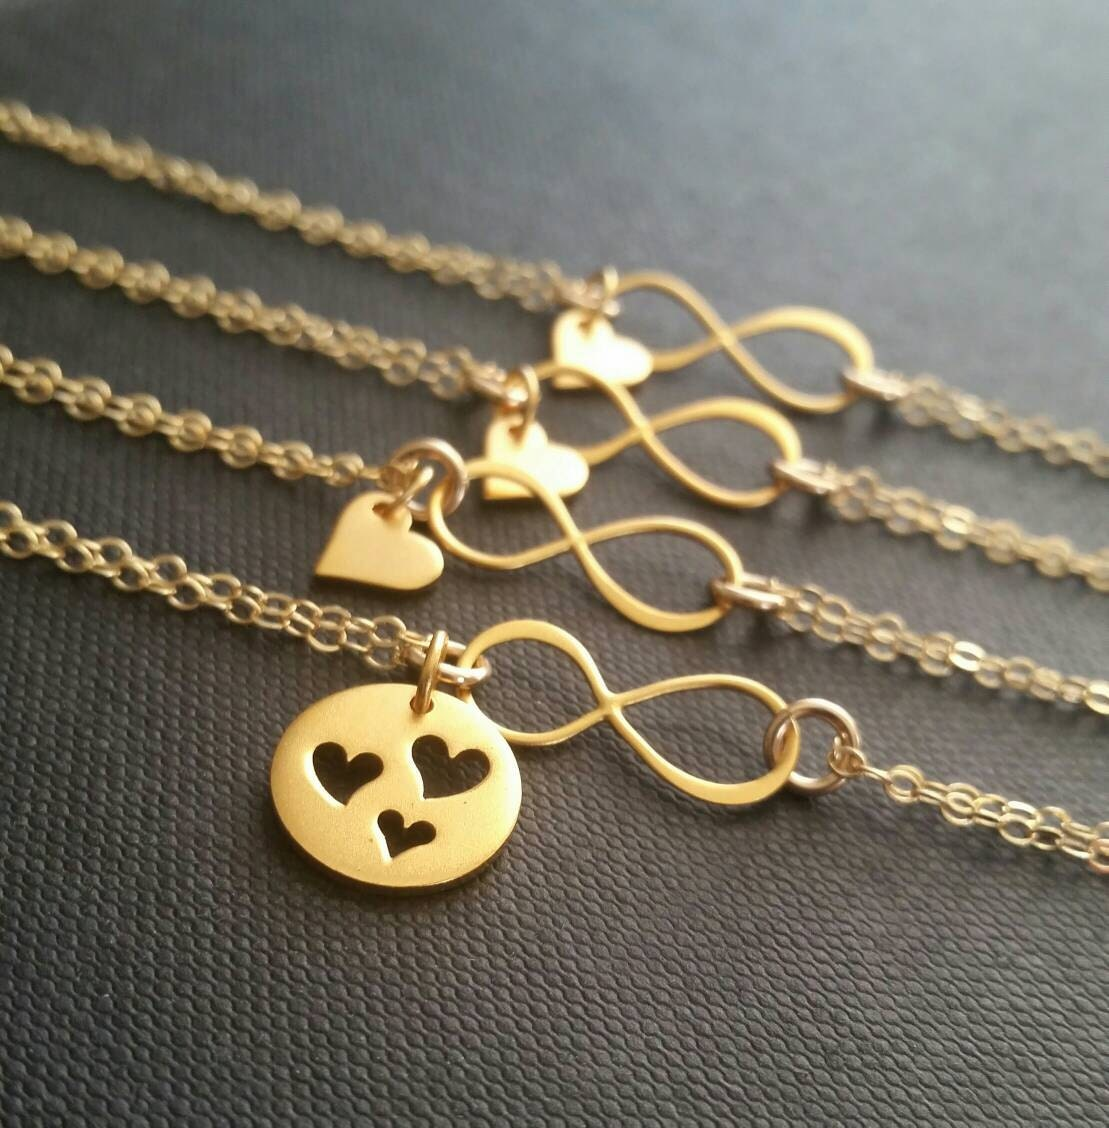 necklace momy heart jewelry big mother pin me for daughter gift infinity and